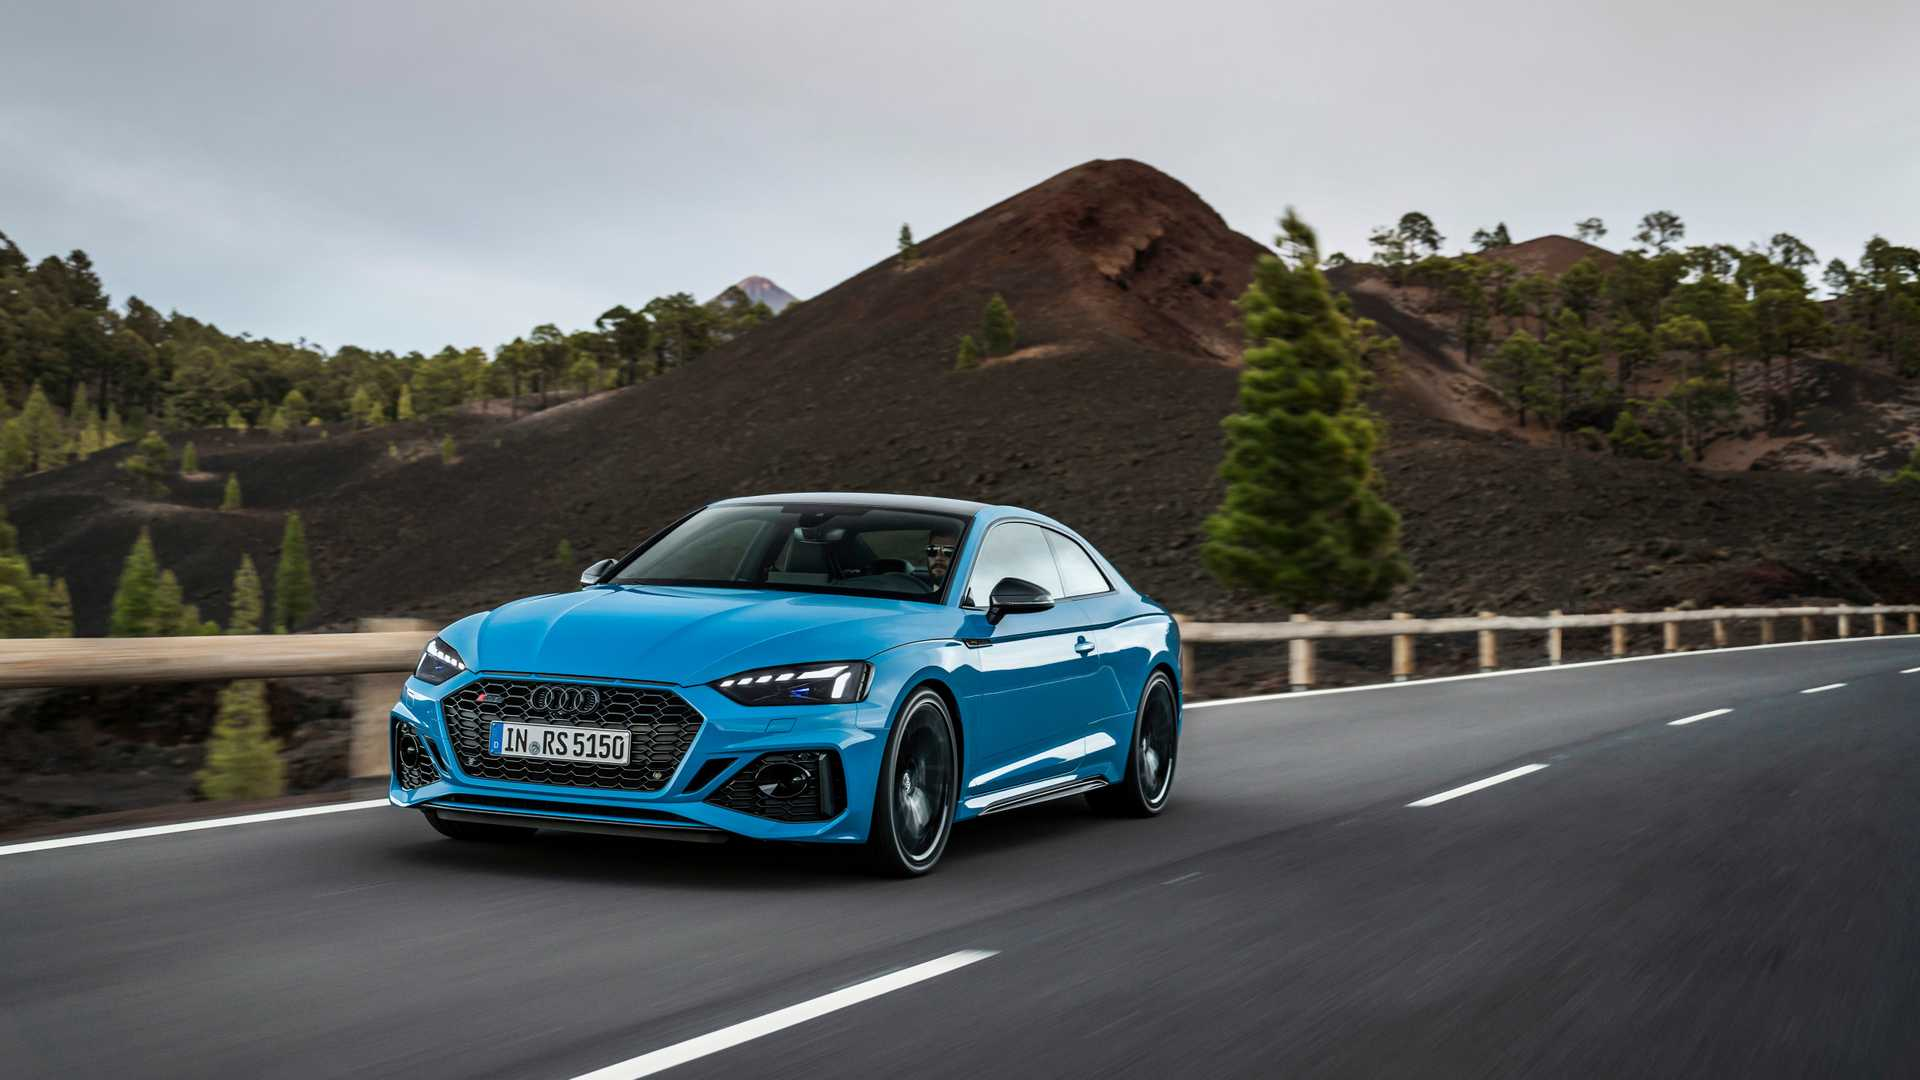 The Audi RS5 Coupe 2020 Gets New Look, Same Power